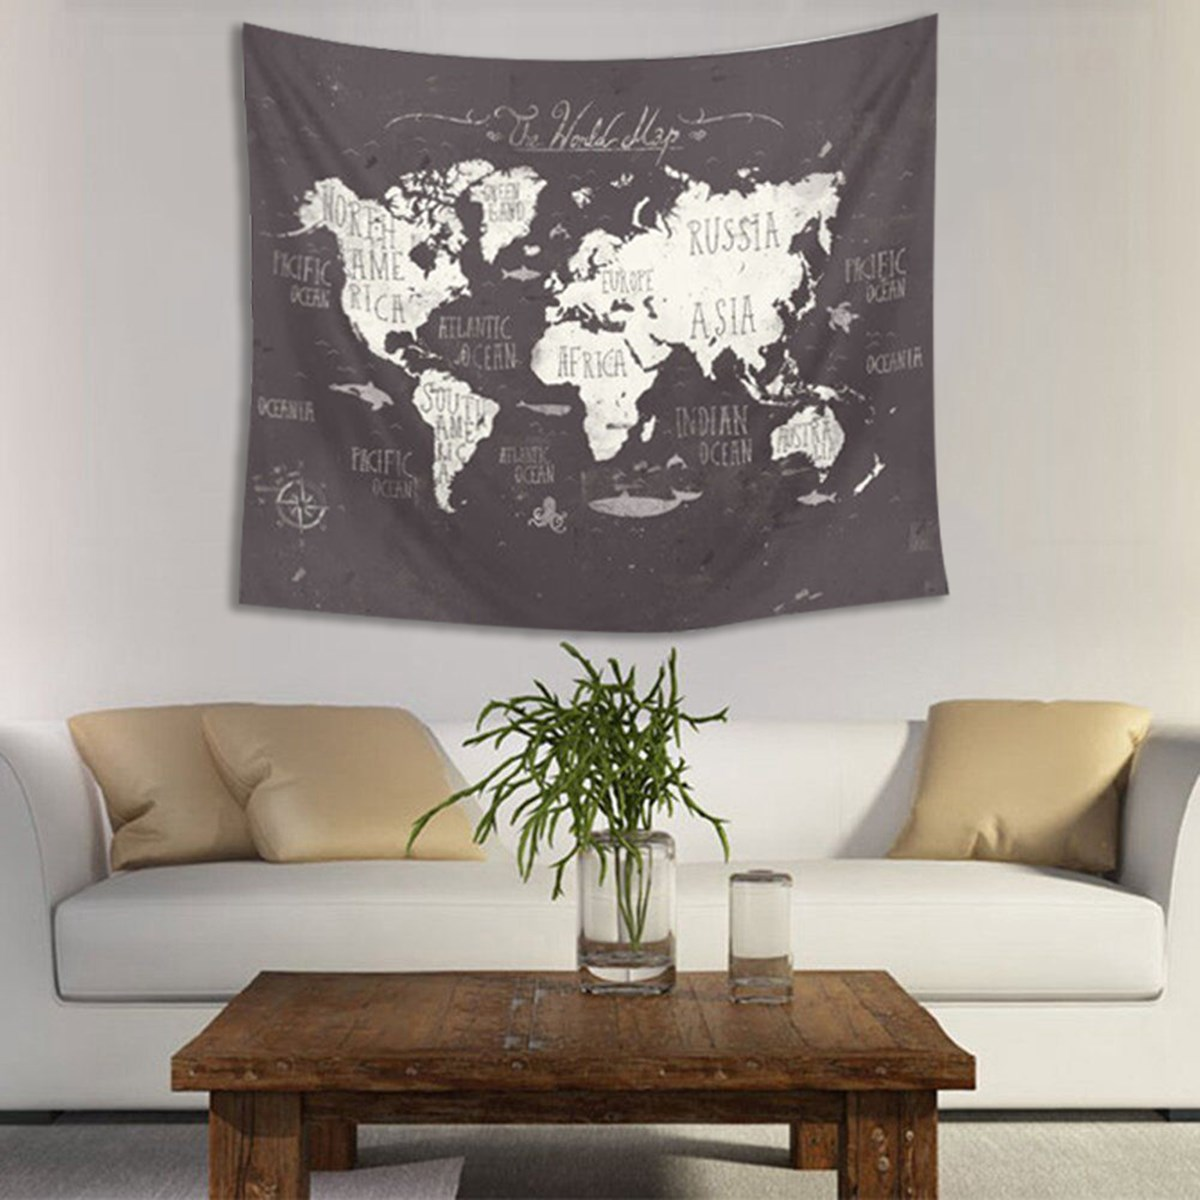 Indian Wall Decor Online Get Yoga Aliexpress Alibaba Group With